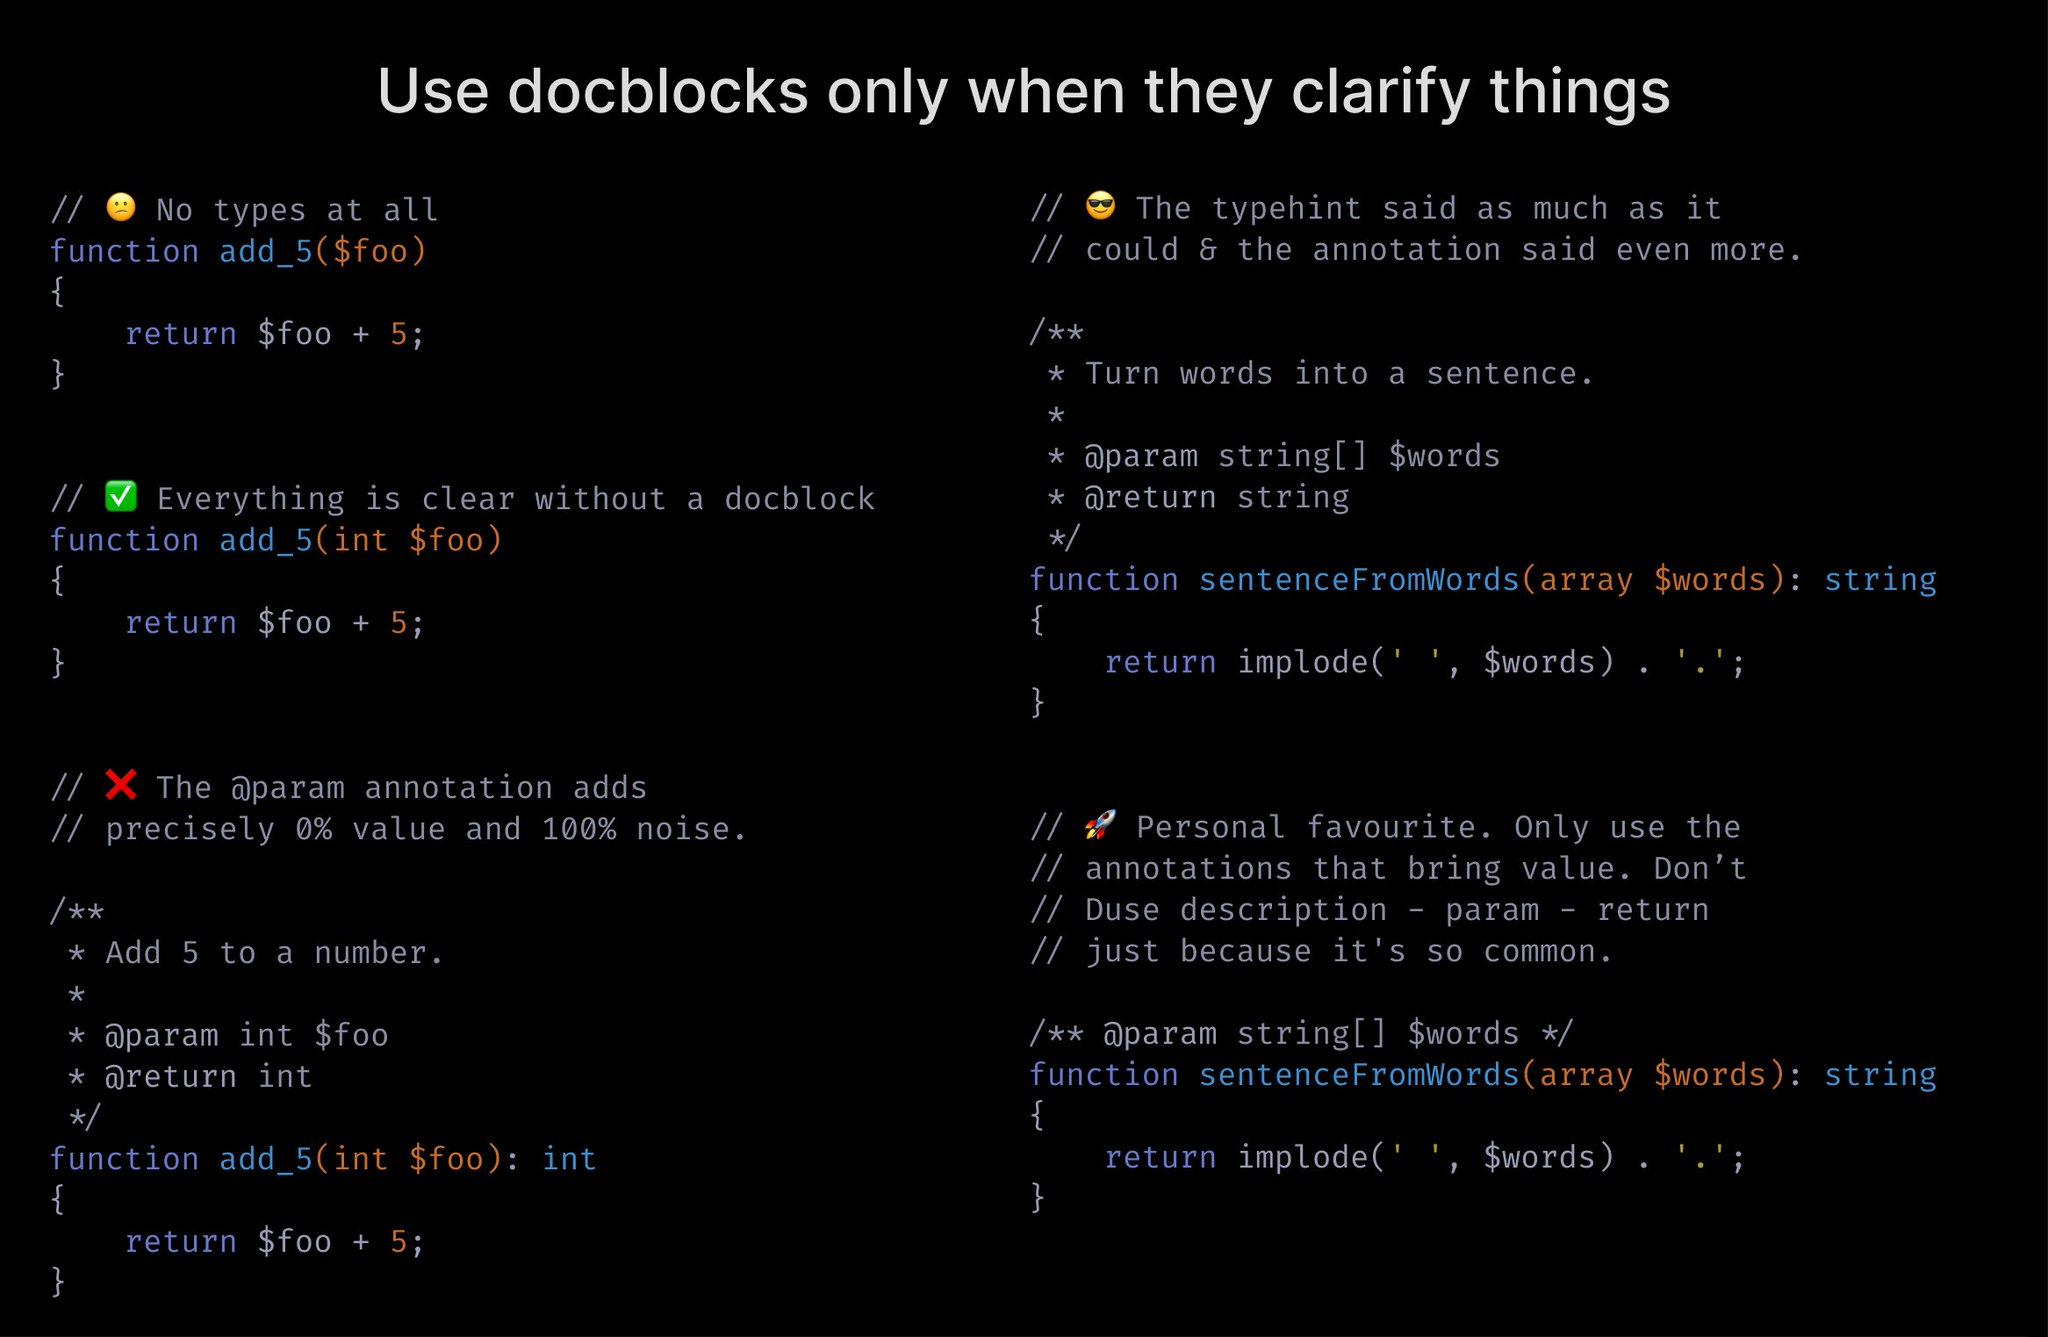 Use docblocks only when they clarify things